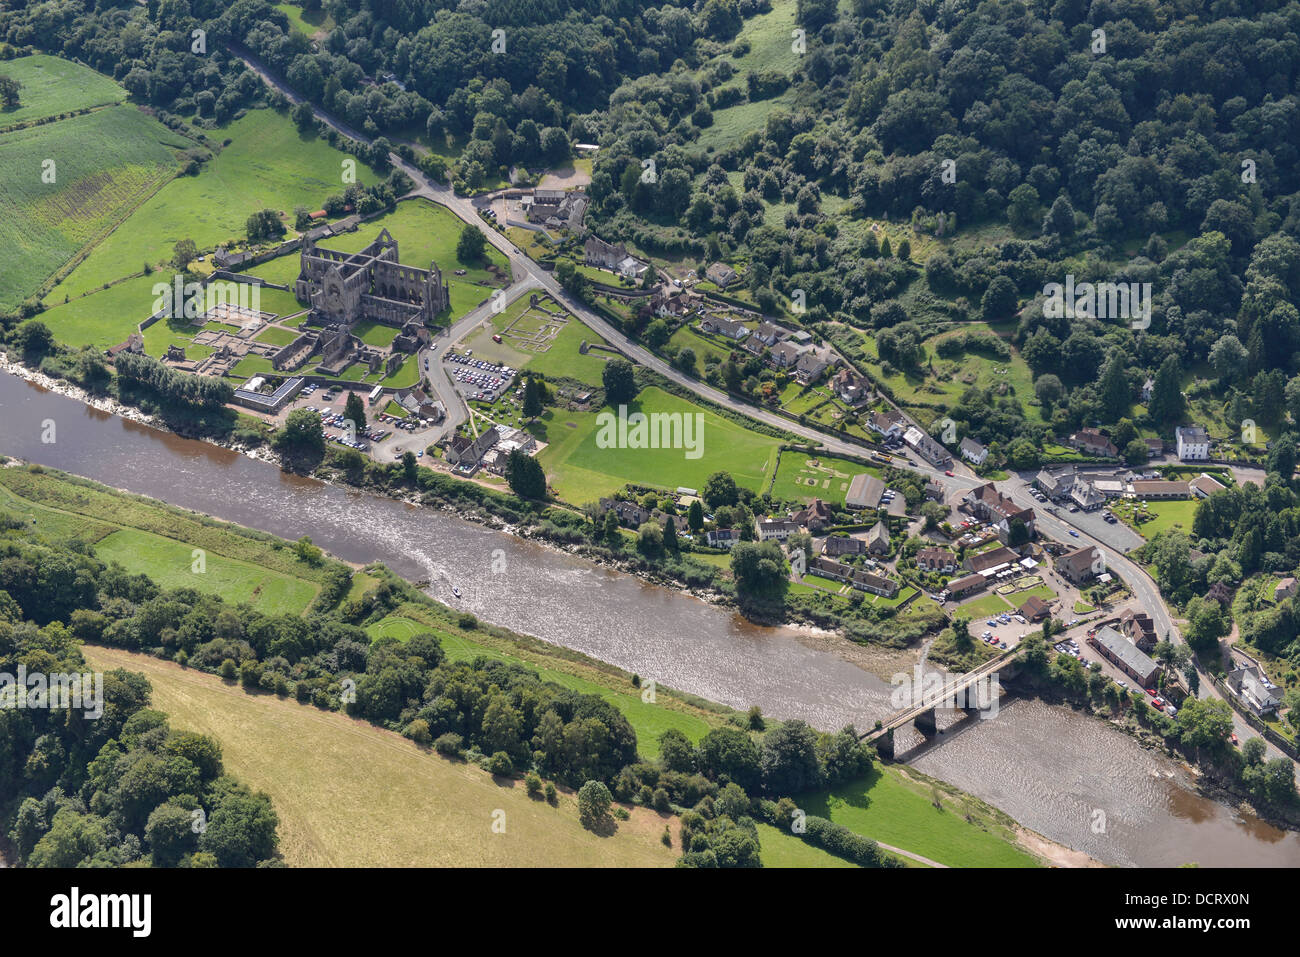 Aerial photograph of Tintern Abbey and the River Wye - Stock Image